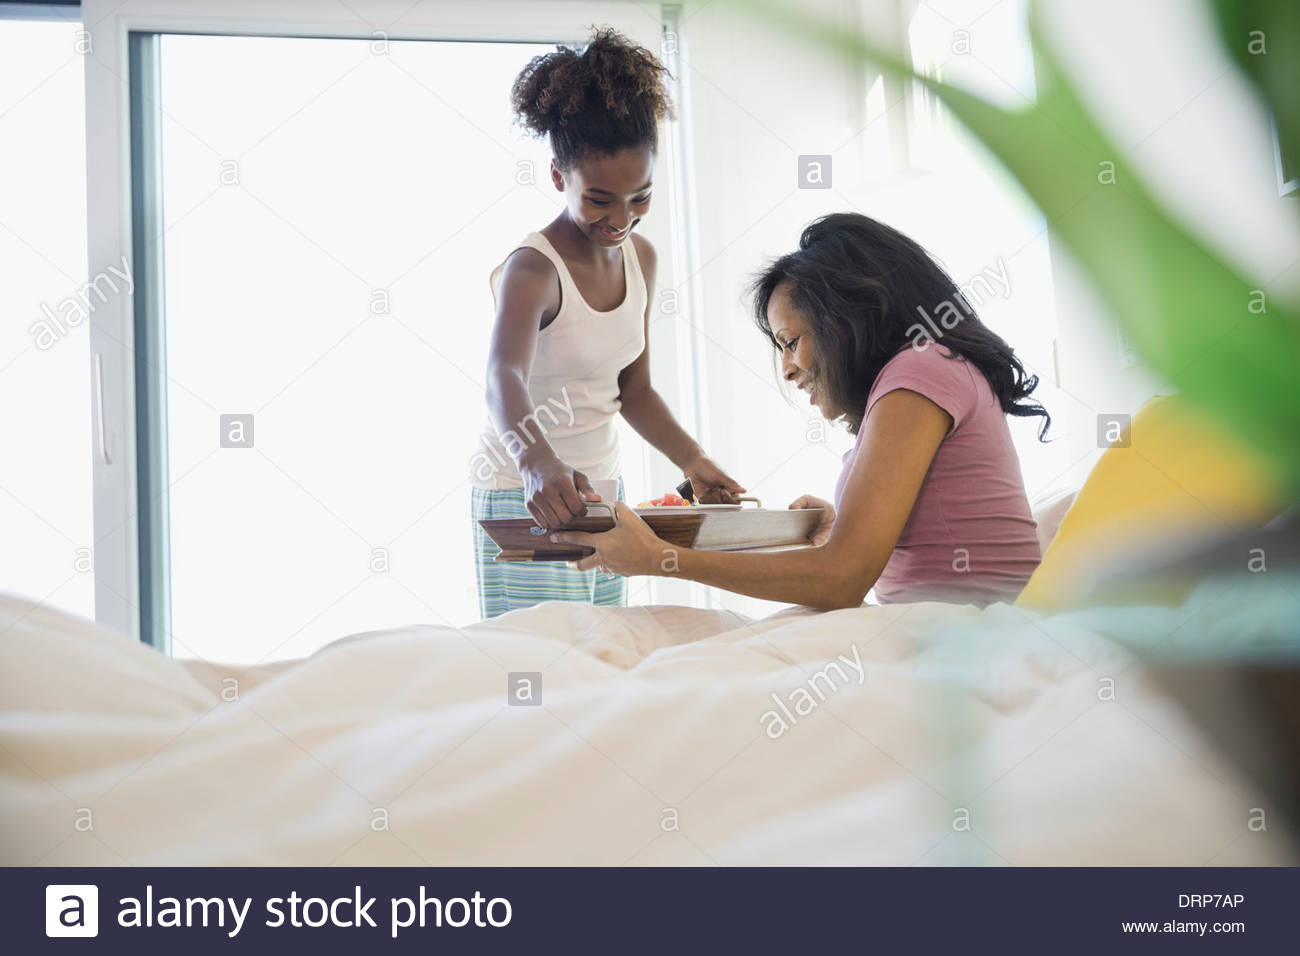 Daughter giving breakfast to mother in bed - Stock Image